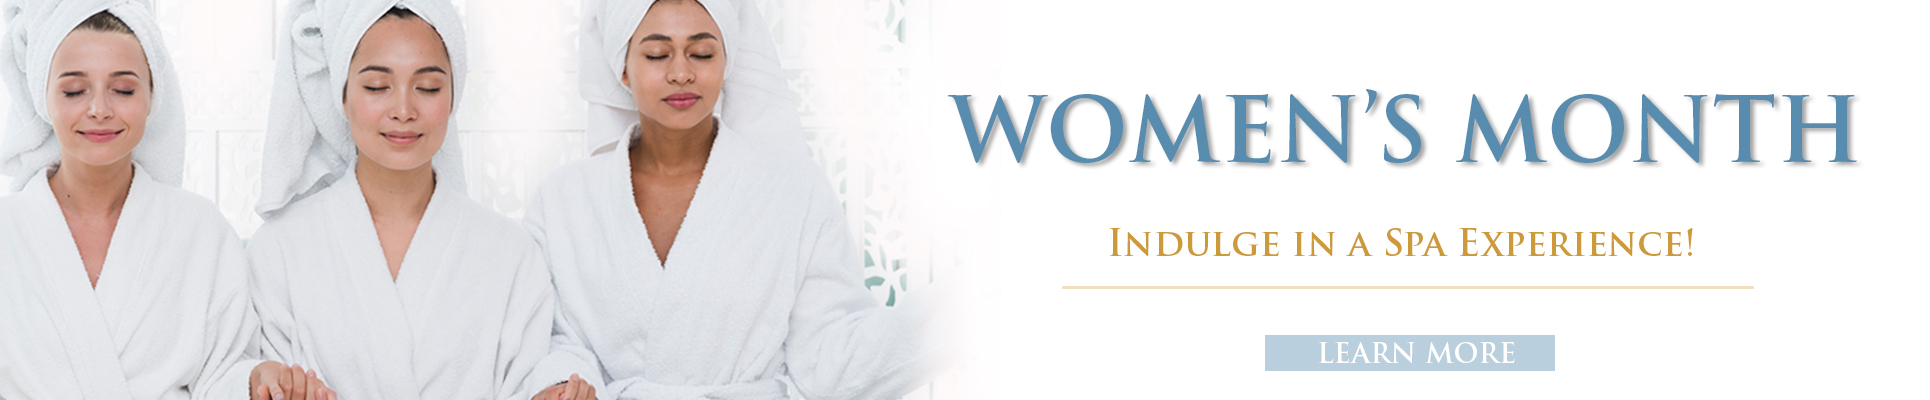 Spa in the Country Women's Month Treatment Packages for Spas in Muldersdrift, Gauteng & Rustenburg, North West